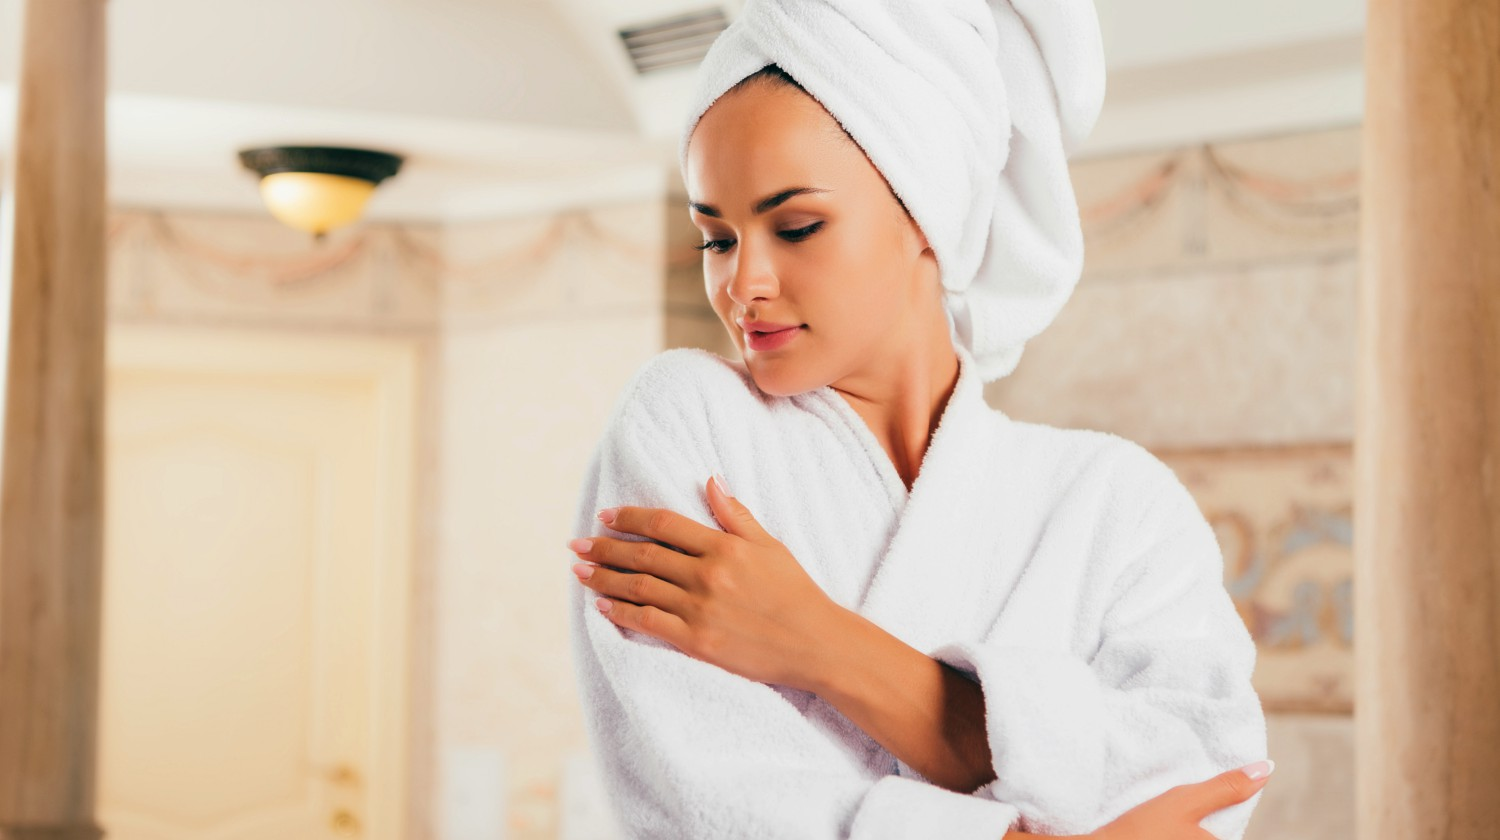 Featured | Utlimate Bathrobe Guide | How To Find And Care For Your Robe